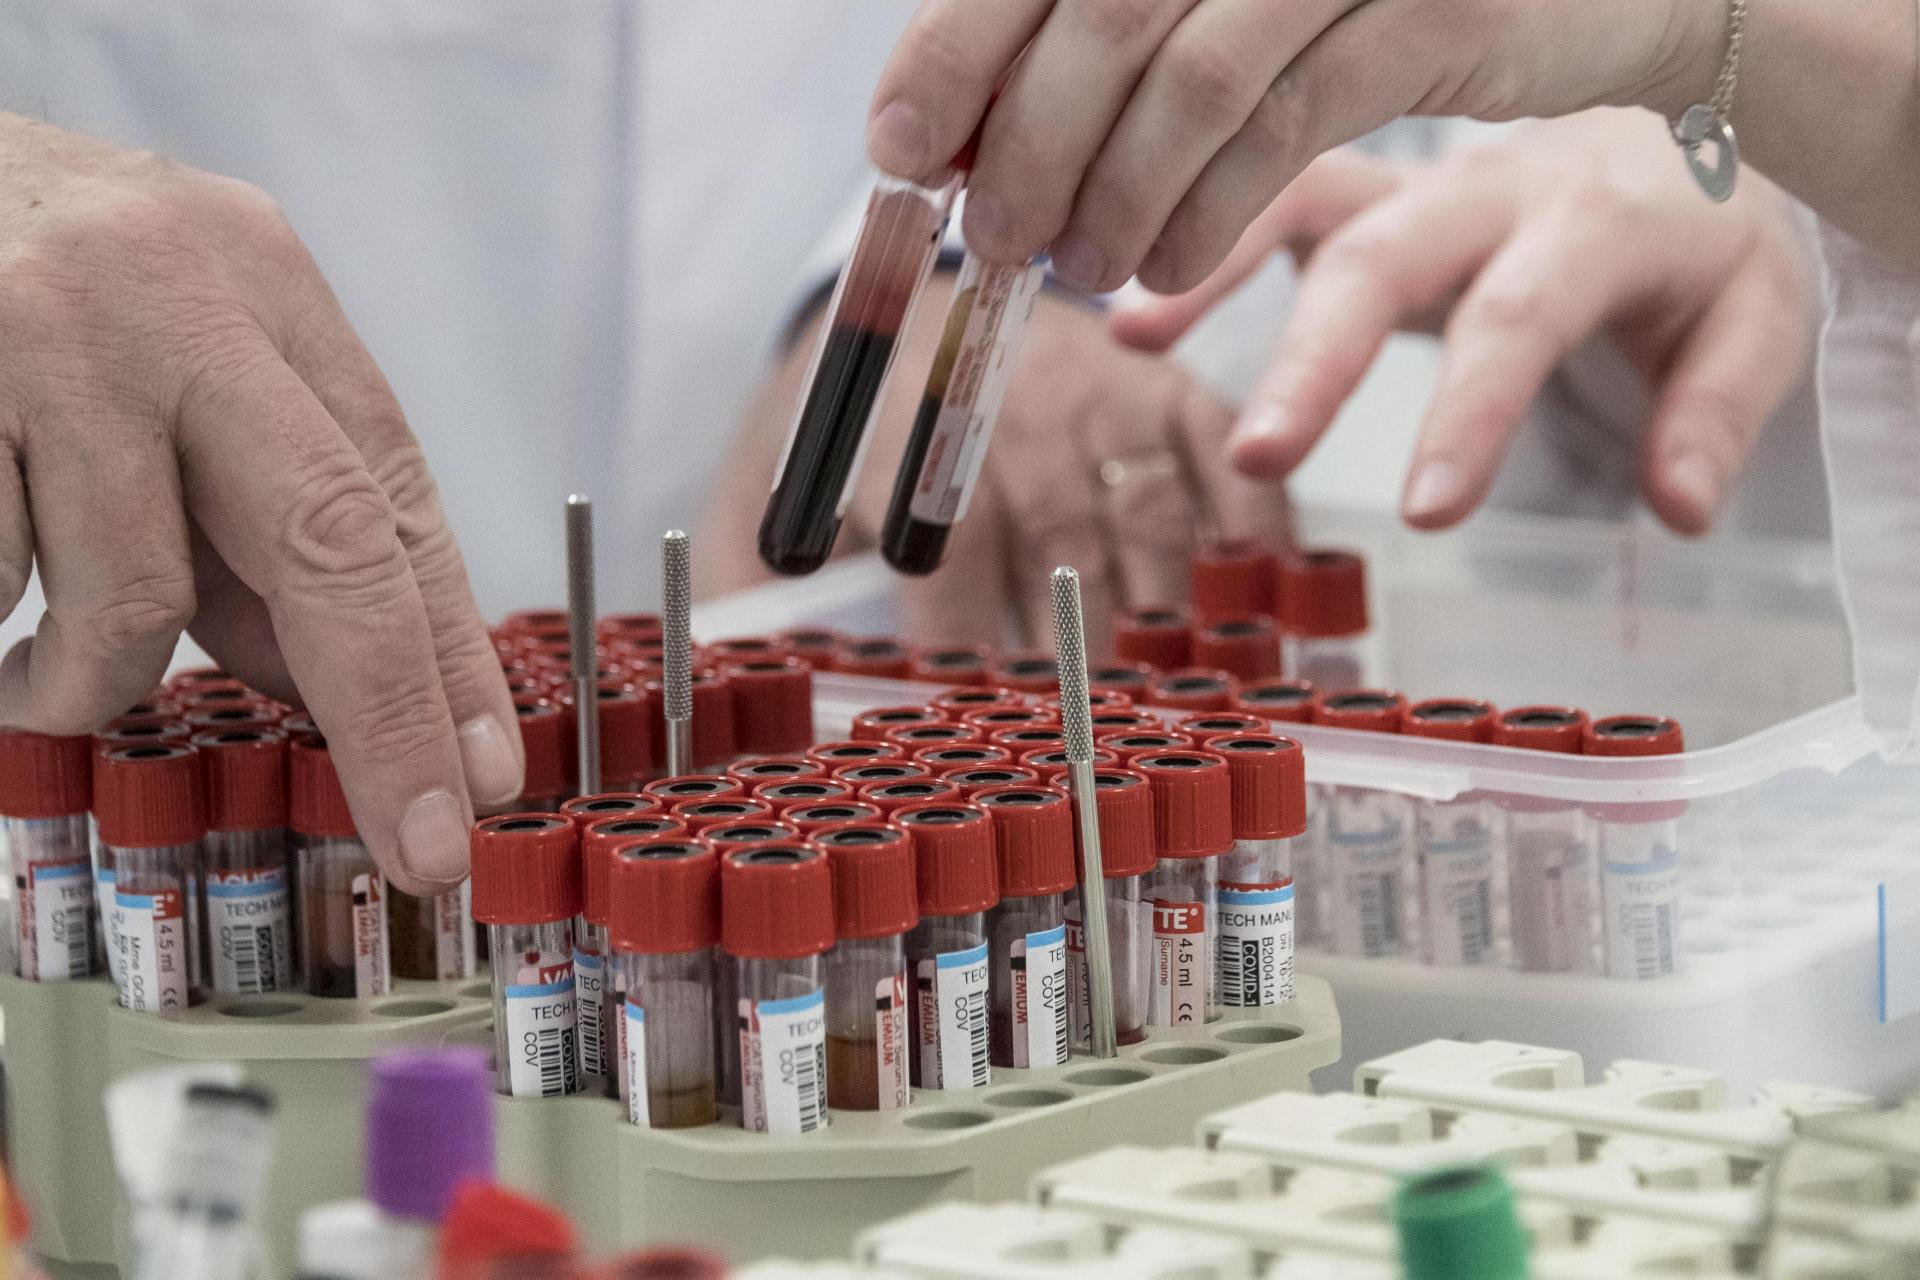 Staff members of the Barrand laboratory sort blood samples for COVID-19 serological tests in Colmar, eastern France, on April 14. Photo: AFP